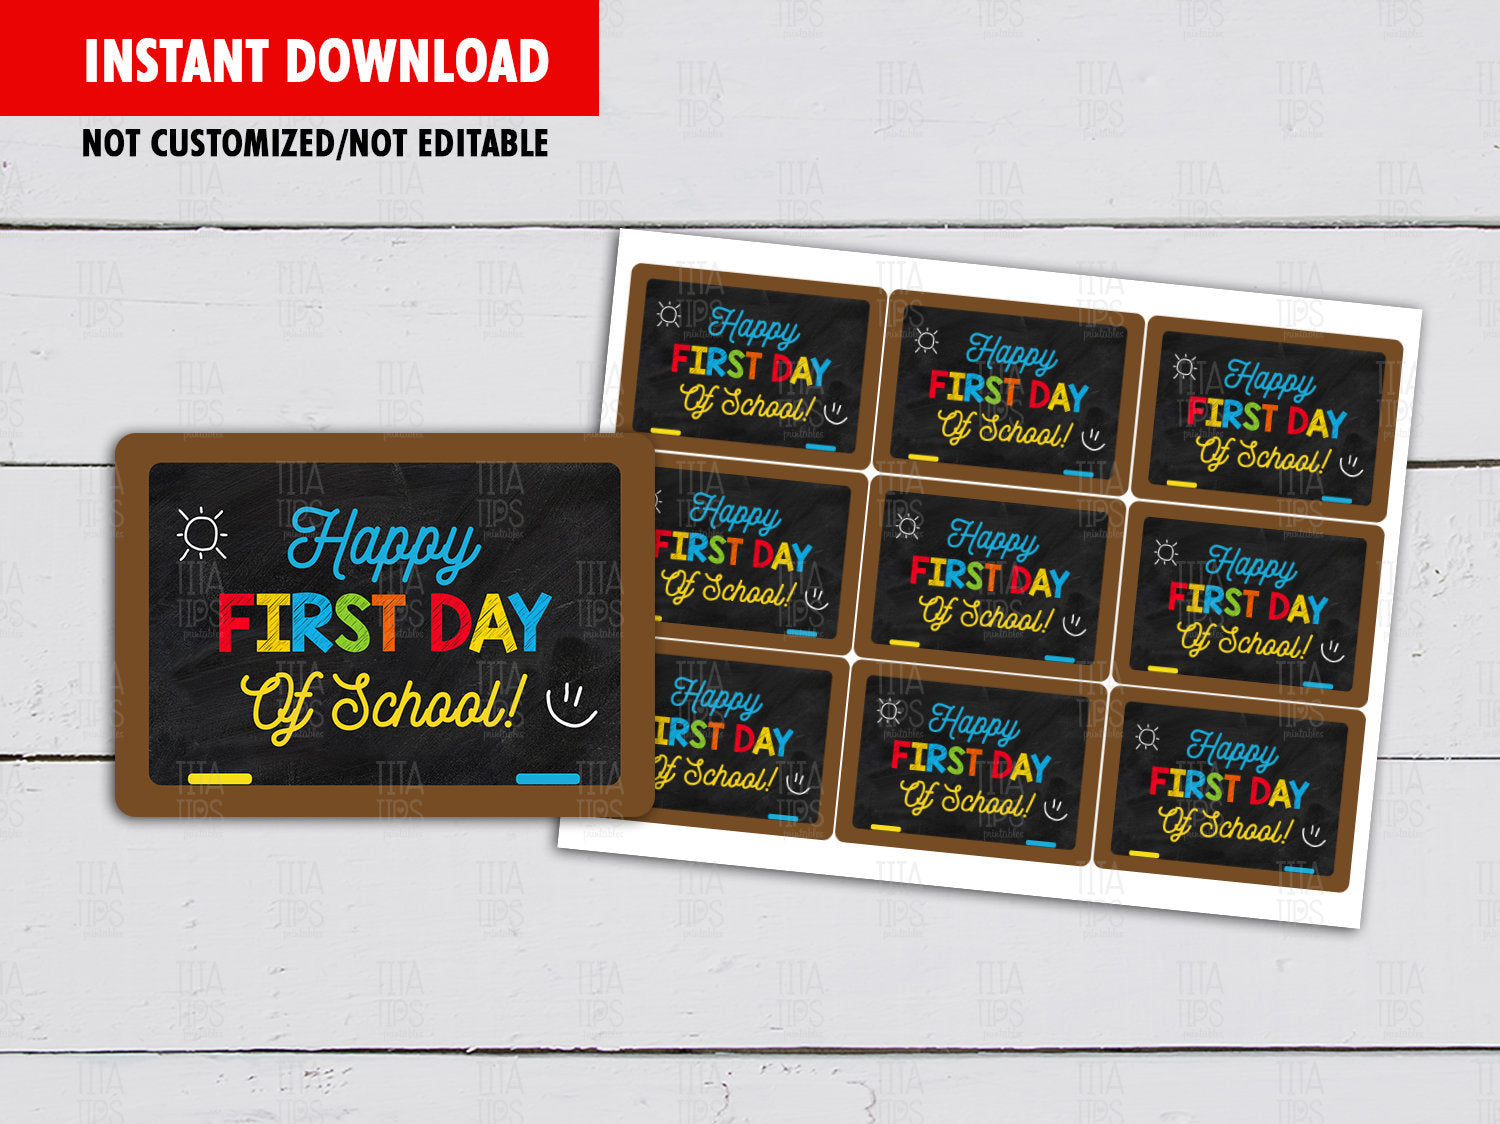 Happy First Day of School, Back to School Chalkboard Gift Tags Ideas, [INSTANT DOWNLOAD] - TitaTipsPrintables